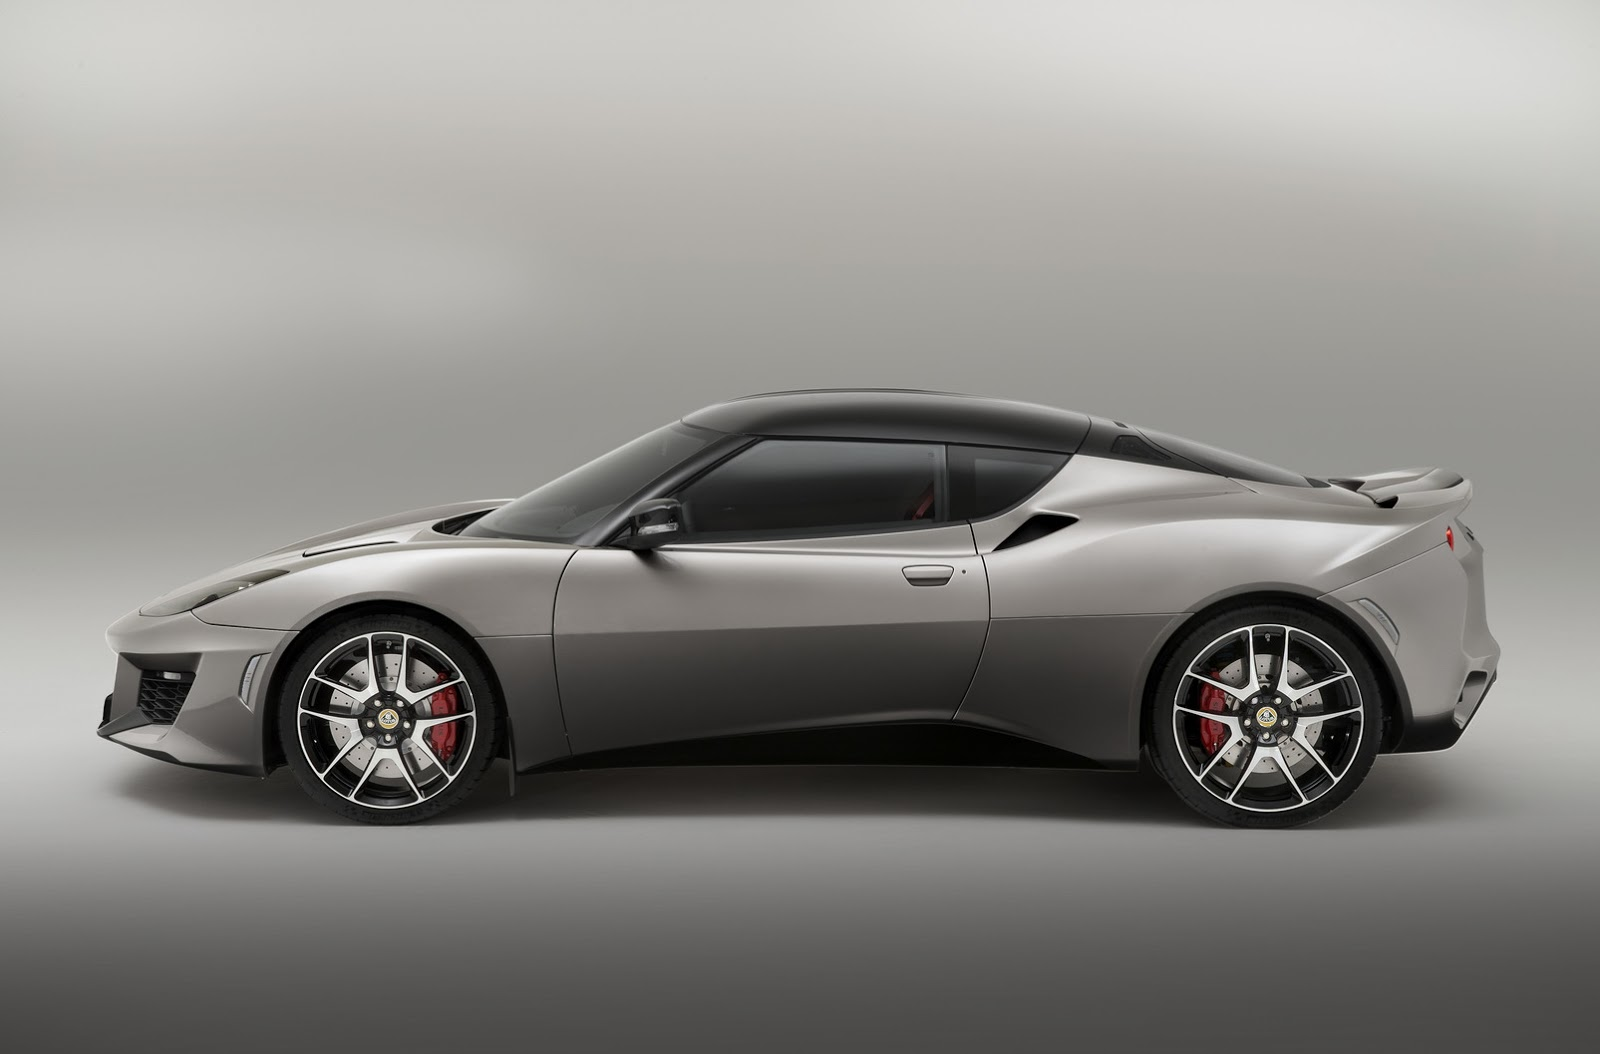 new lotus evora 400 has fresh looks more power and less. Black Bedroom Furniture Sets. Home Design Ideas